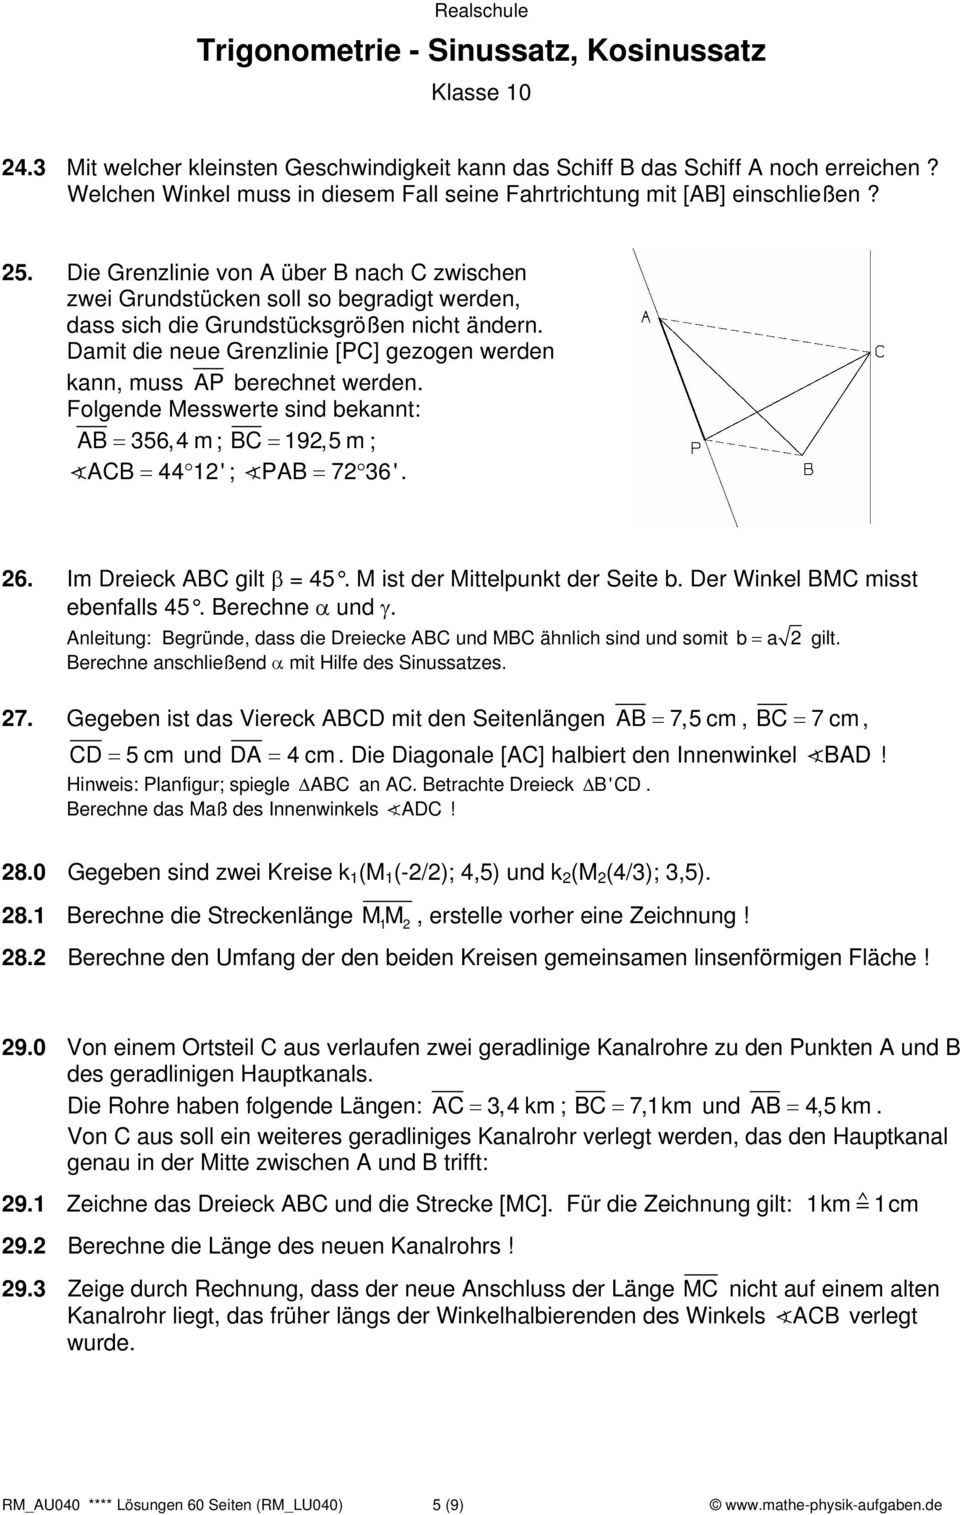 Colorful Trigonometrie Bewertung Arbeitsblatt Composition - Mathe ...